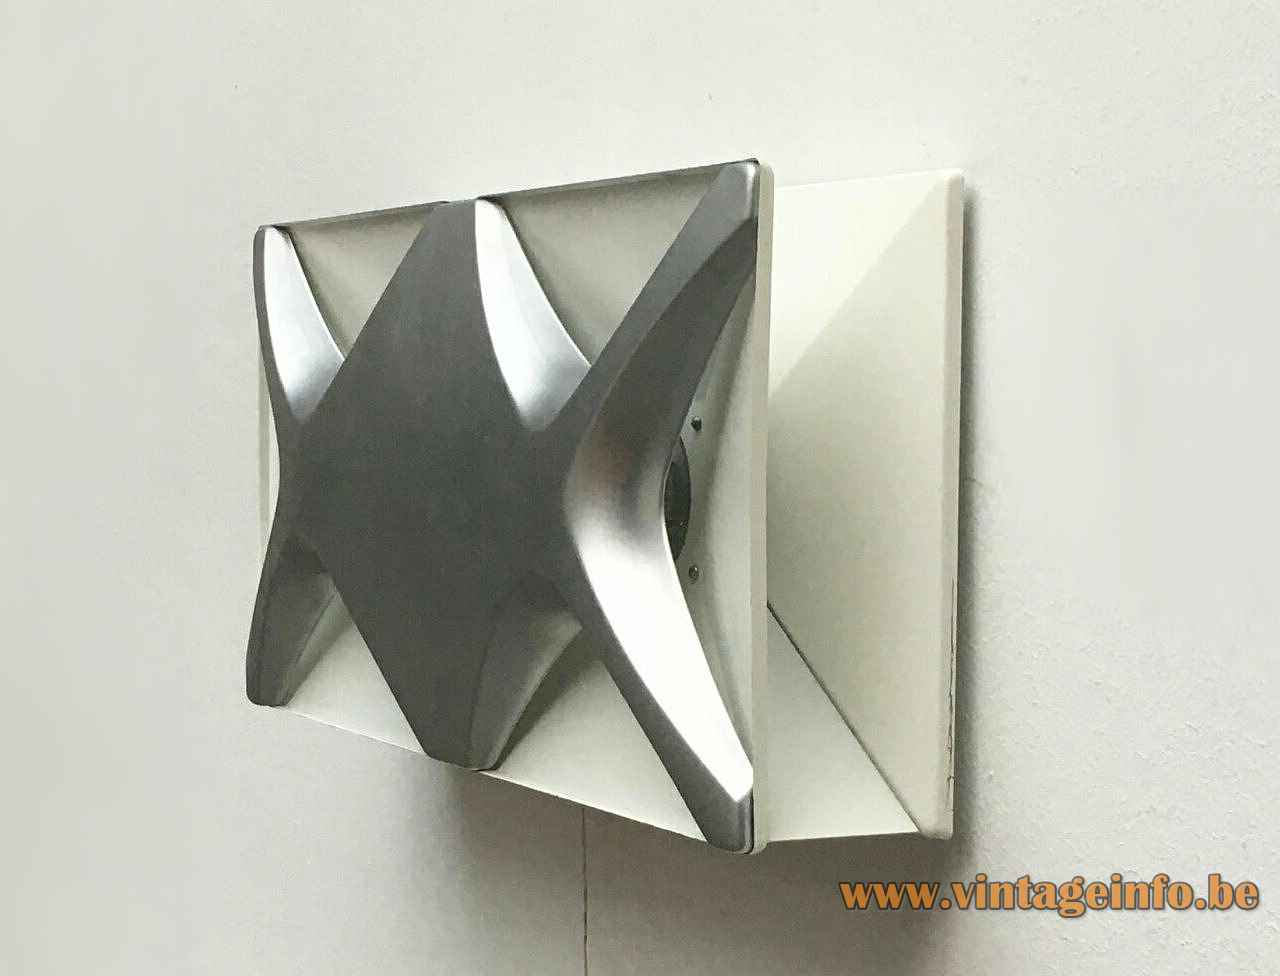 Klaus Link wall lamp rectangular silver grey metalic & white metal lampshade 1970s Heinz Neuhaus Leuchten Germany